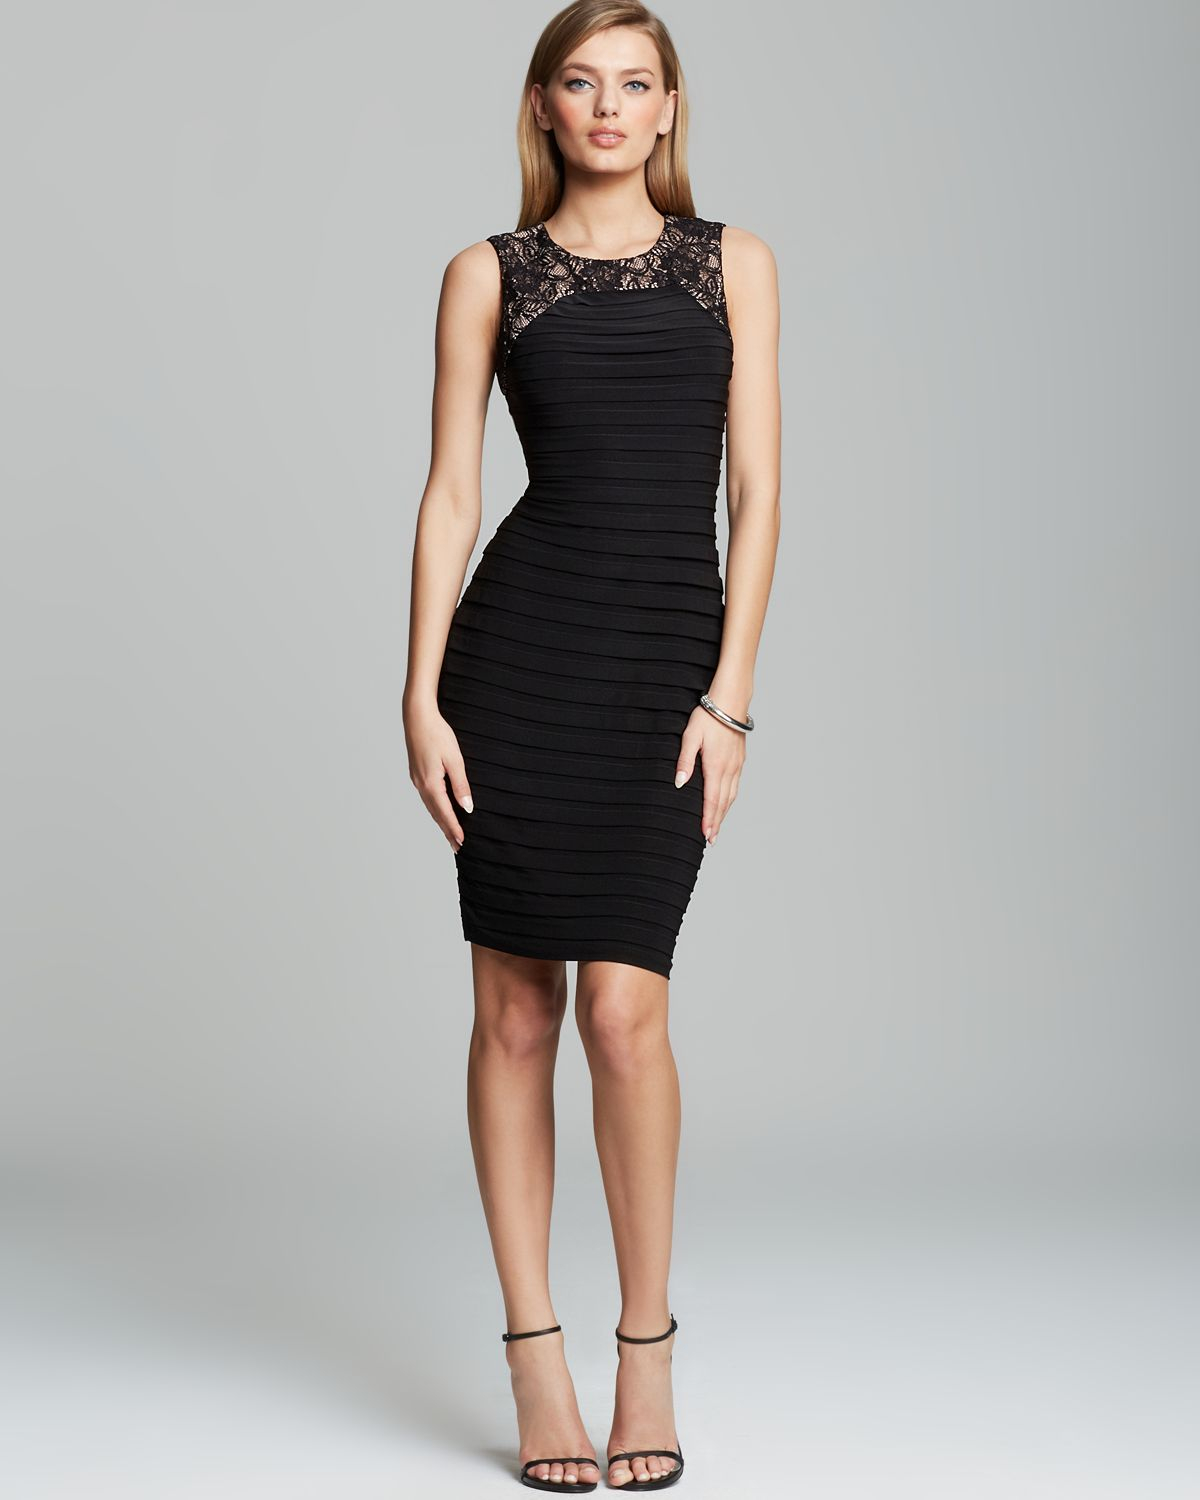 Adrianna Papell Black Dress